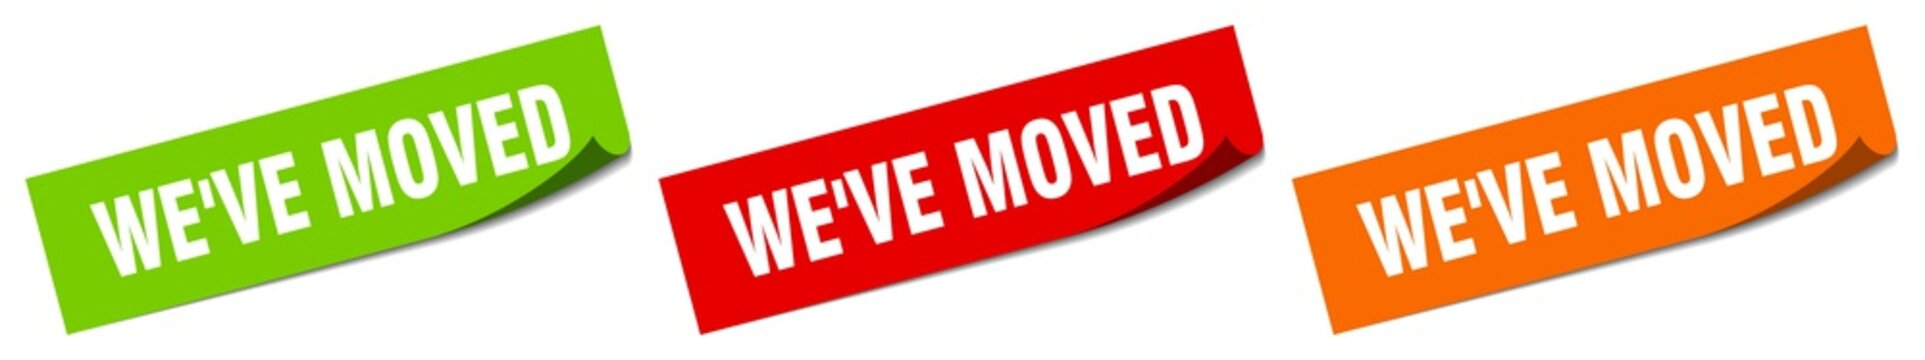 we've moved sticker. we've moved square isolated sign. we've moved label